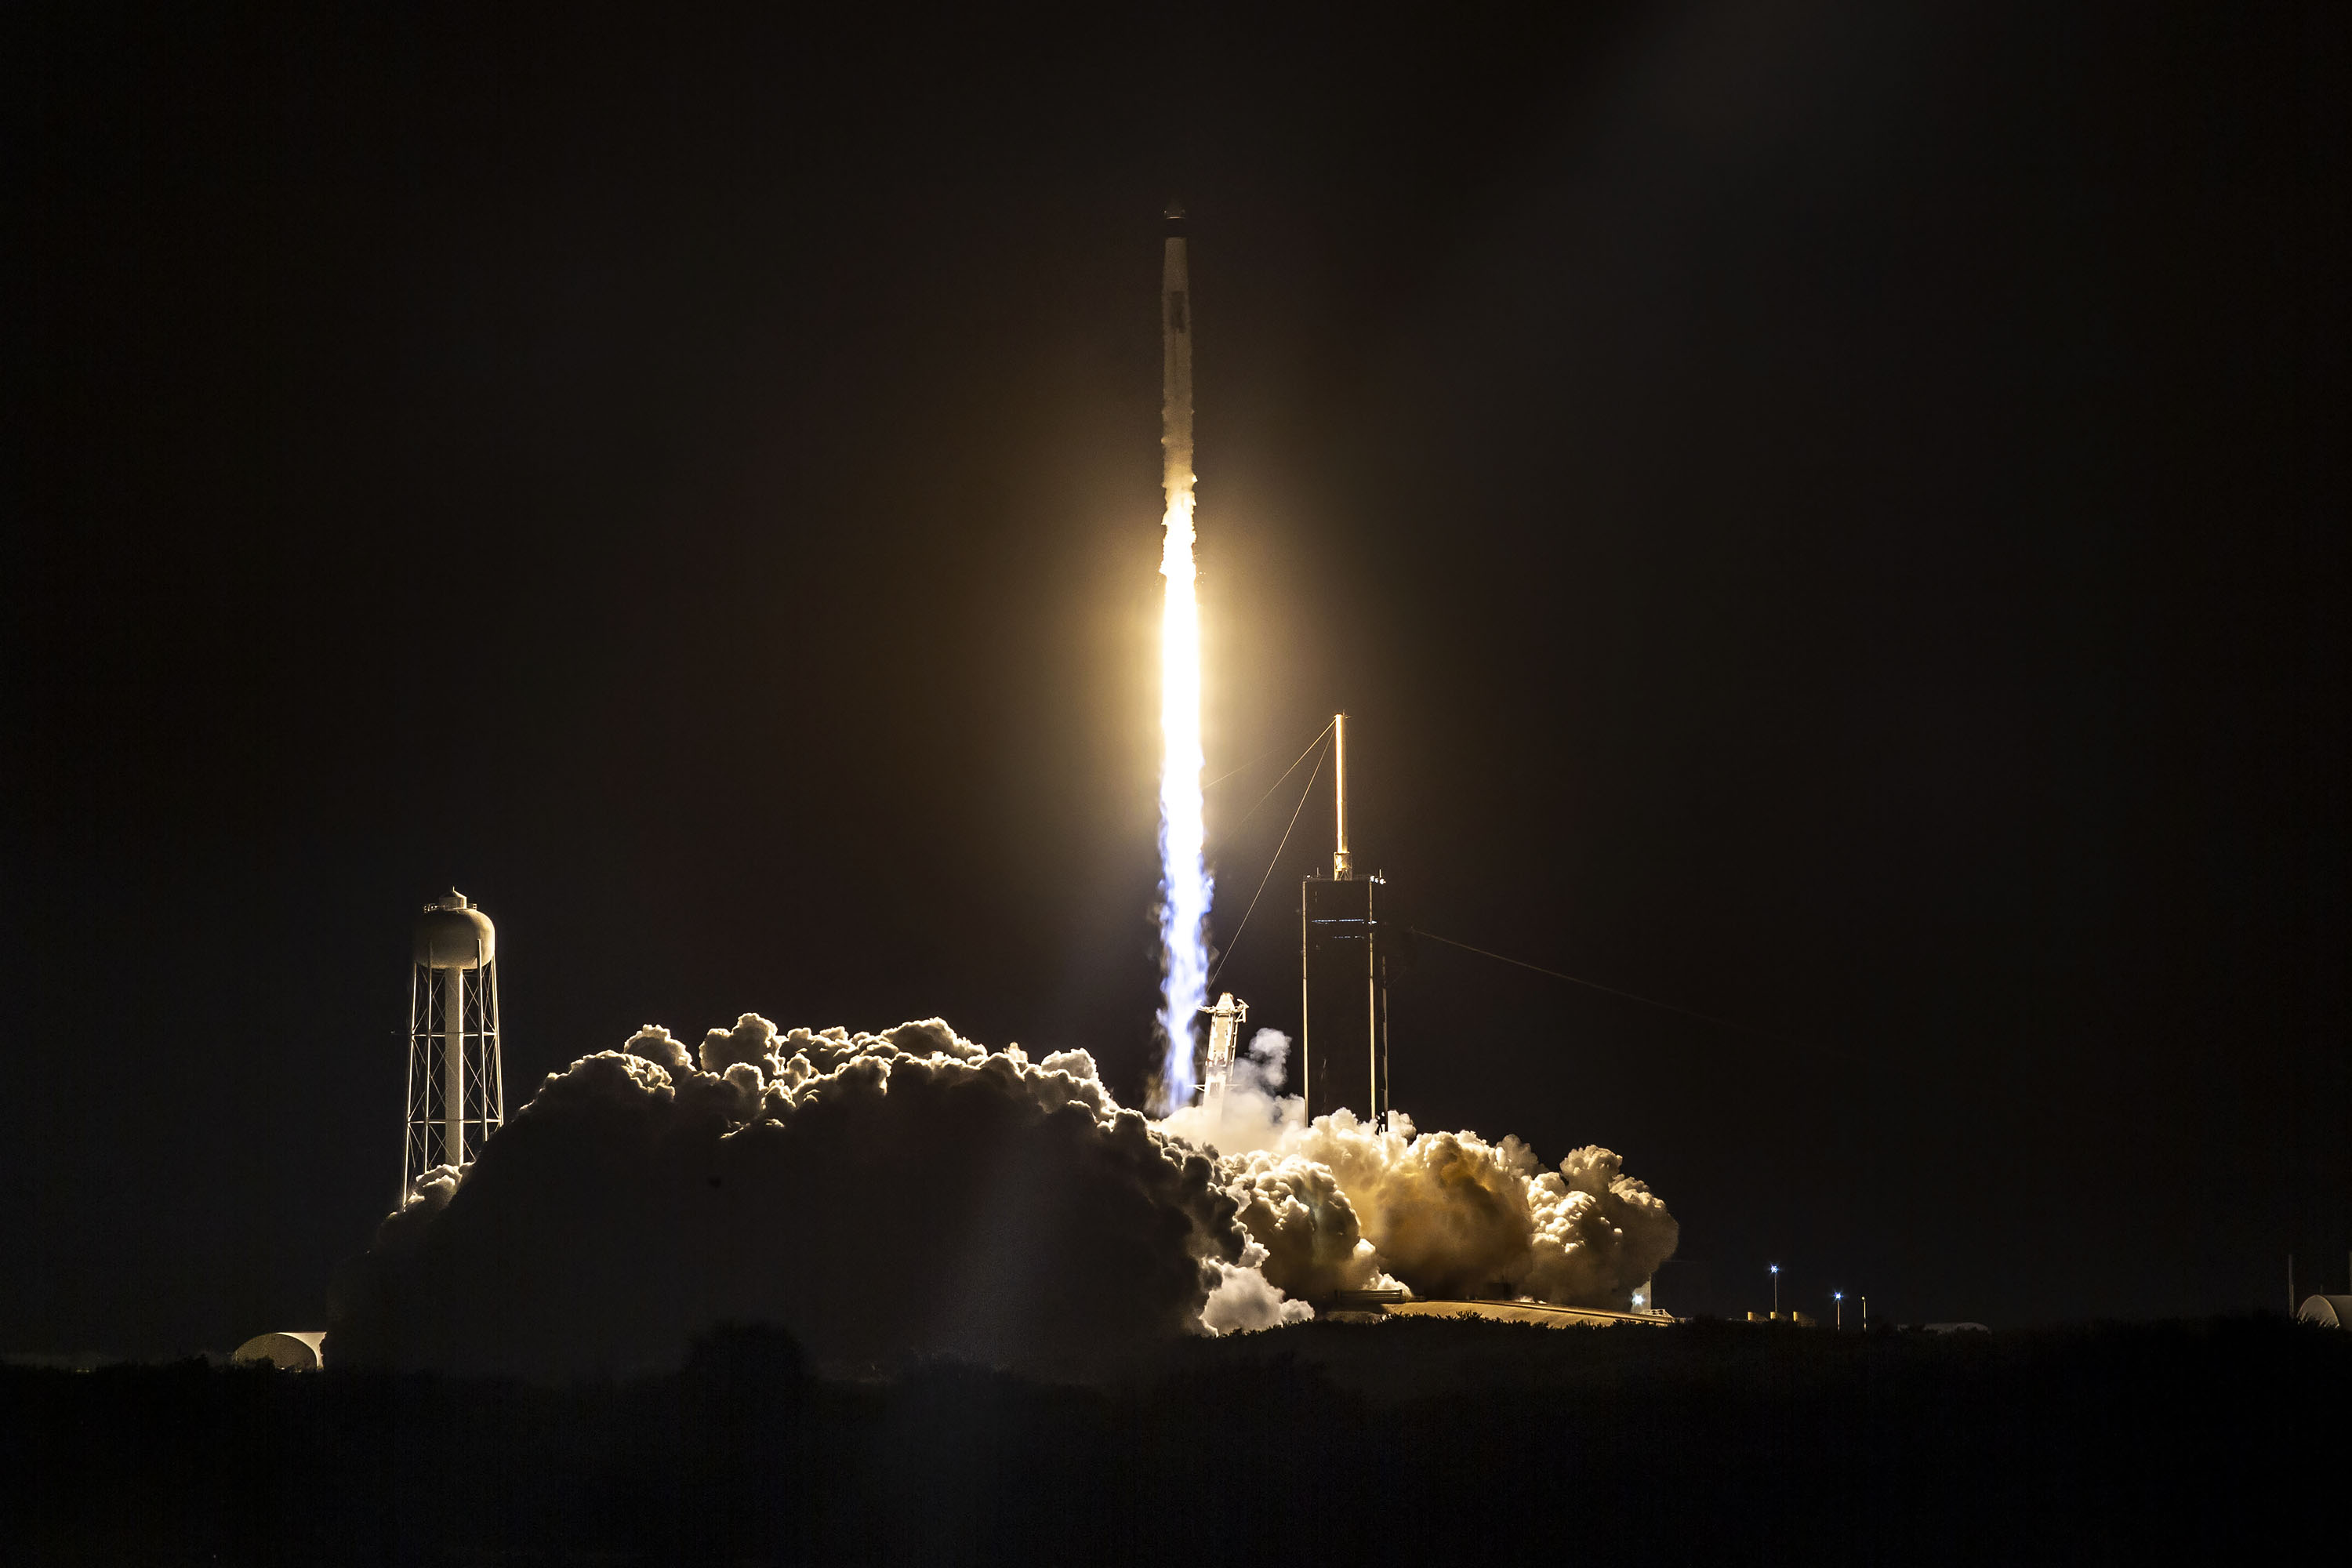 spacex-crew-1-launch-2.jpg